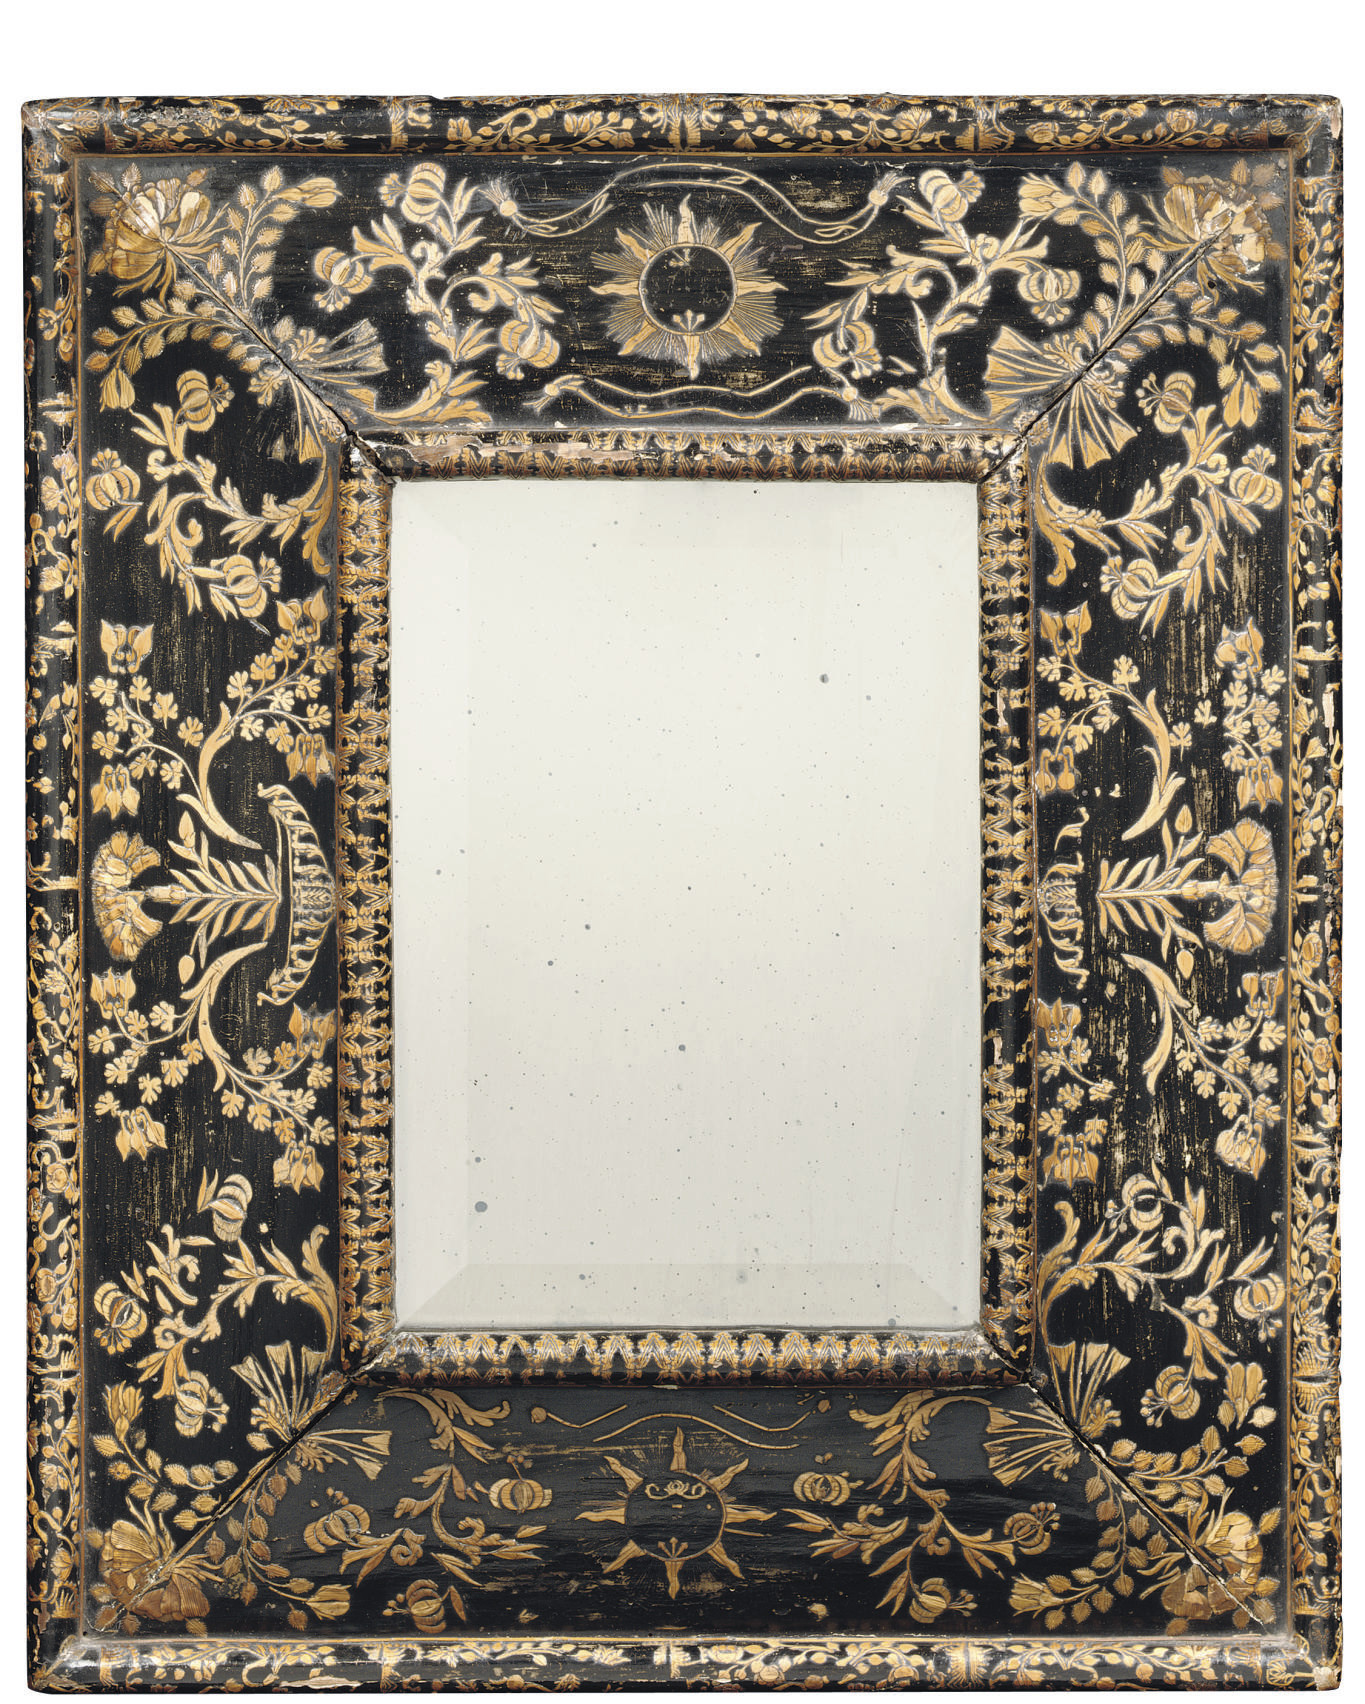 A FRENCH EBONISED STRAW-WORK (